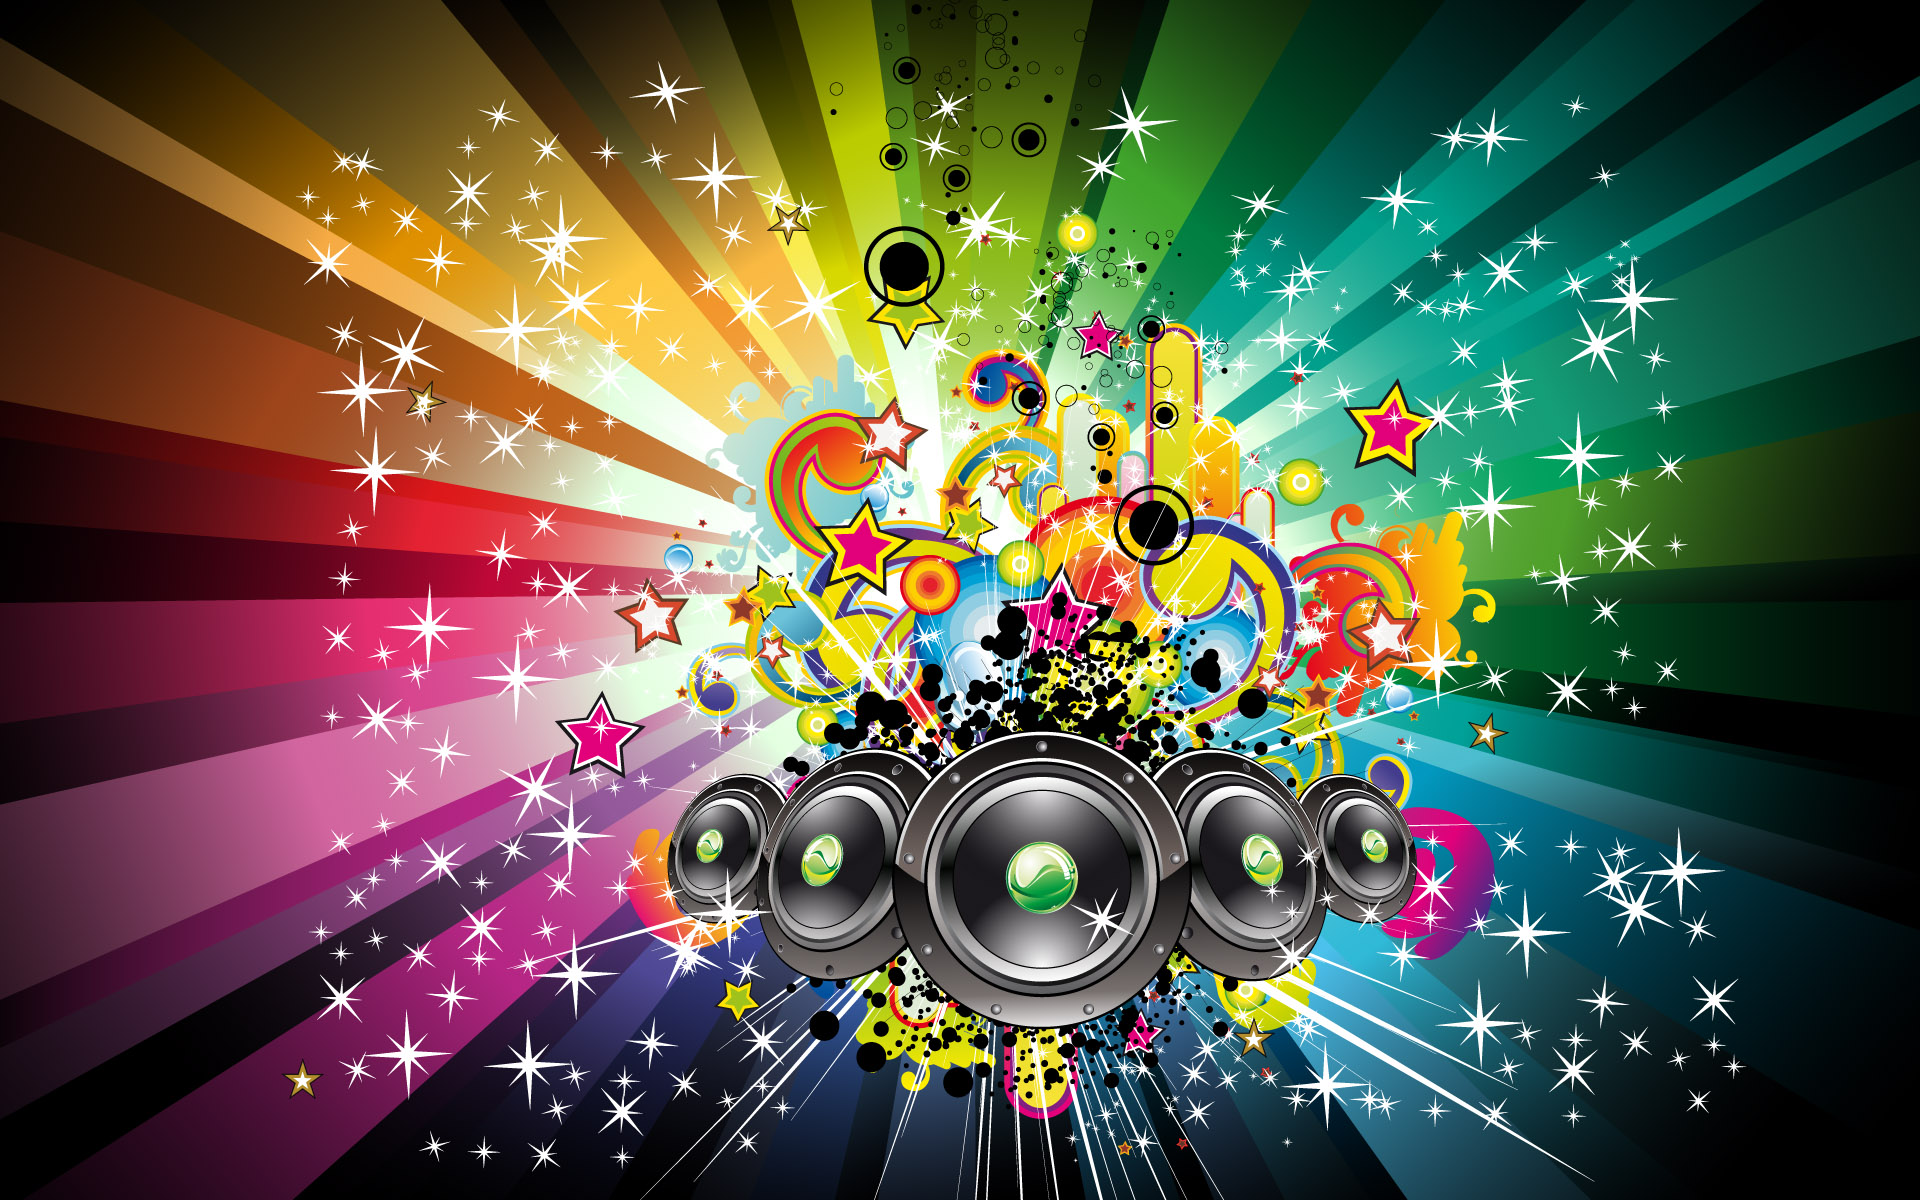 Wallpapers Hd 3d Music: Music Wallpapers HD